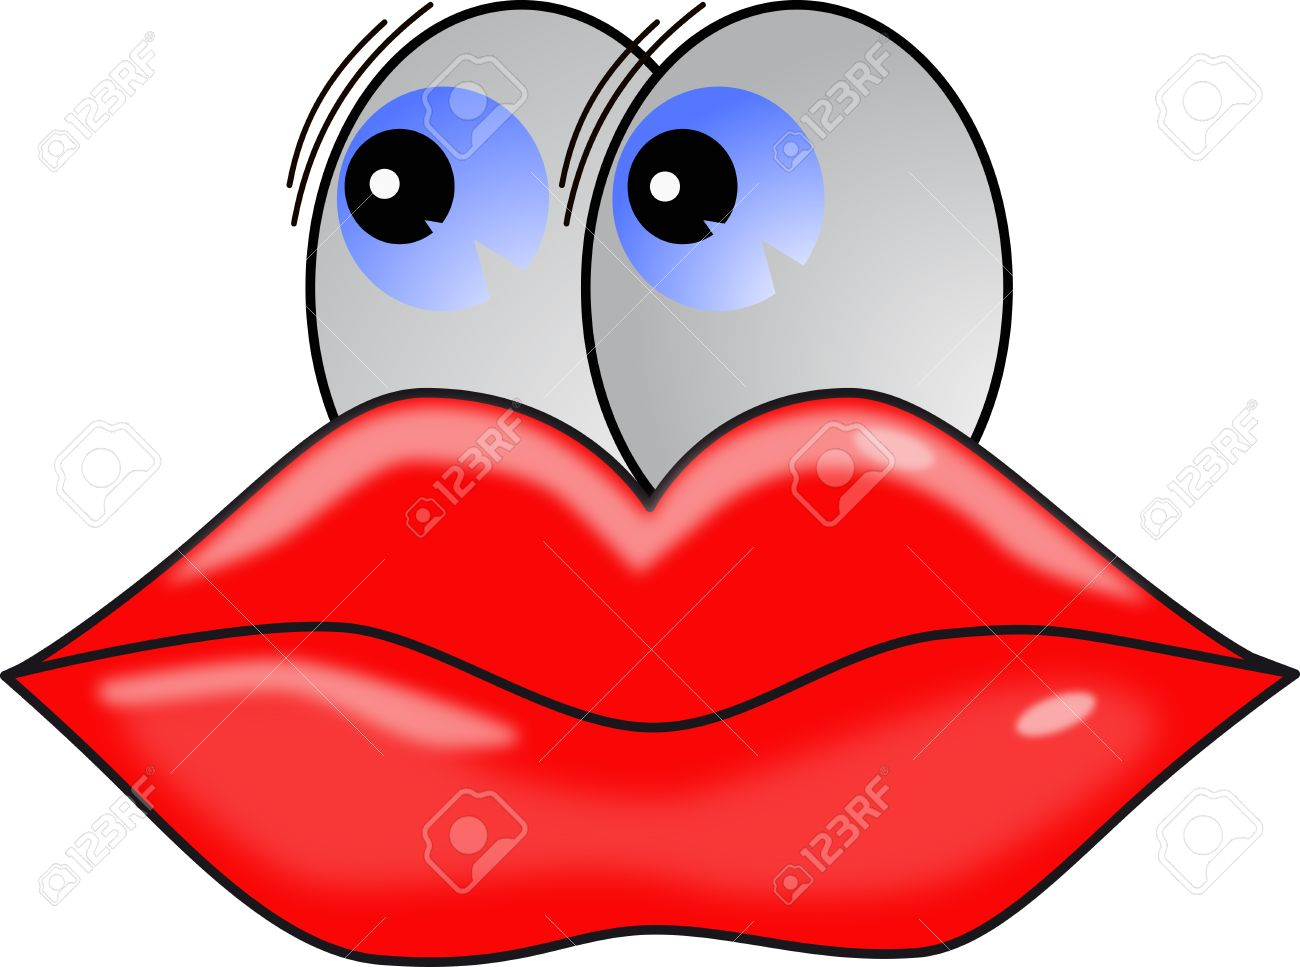 Big Lips And Eyes Cartoon Character Stock Photo Picture And Royalty